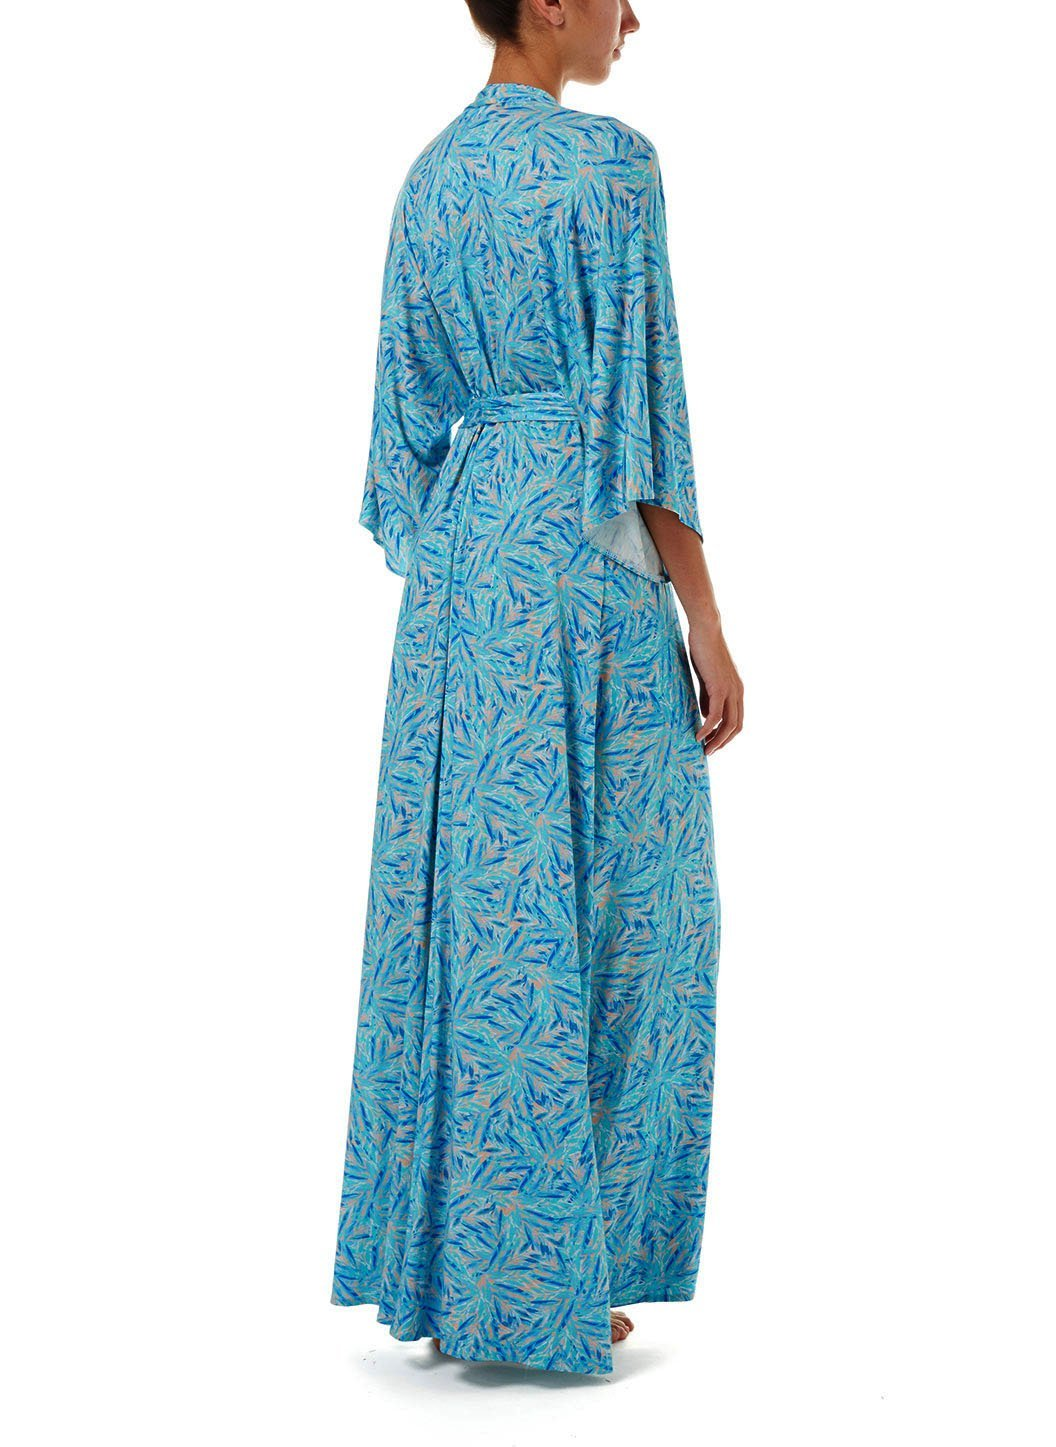 annaelle blue leaf longsleeve belted maxi dress 2019 B